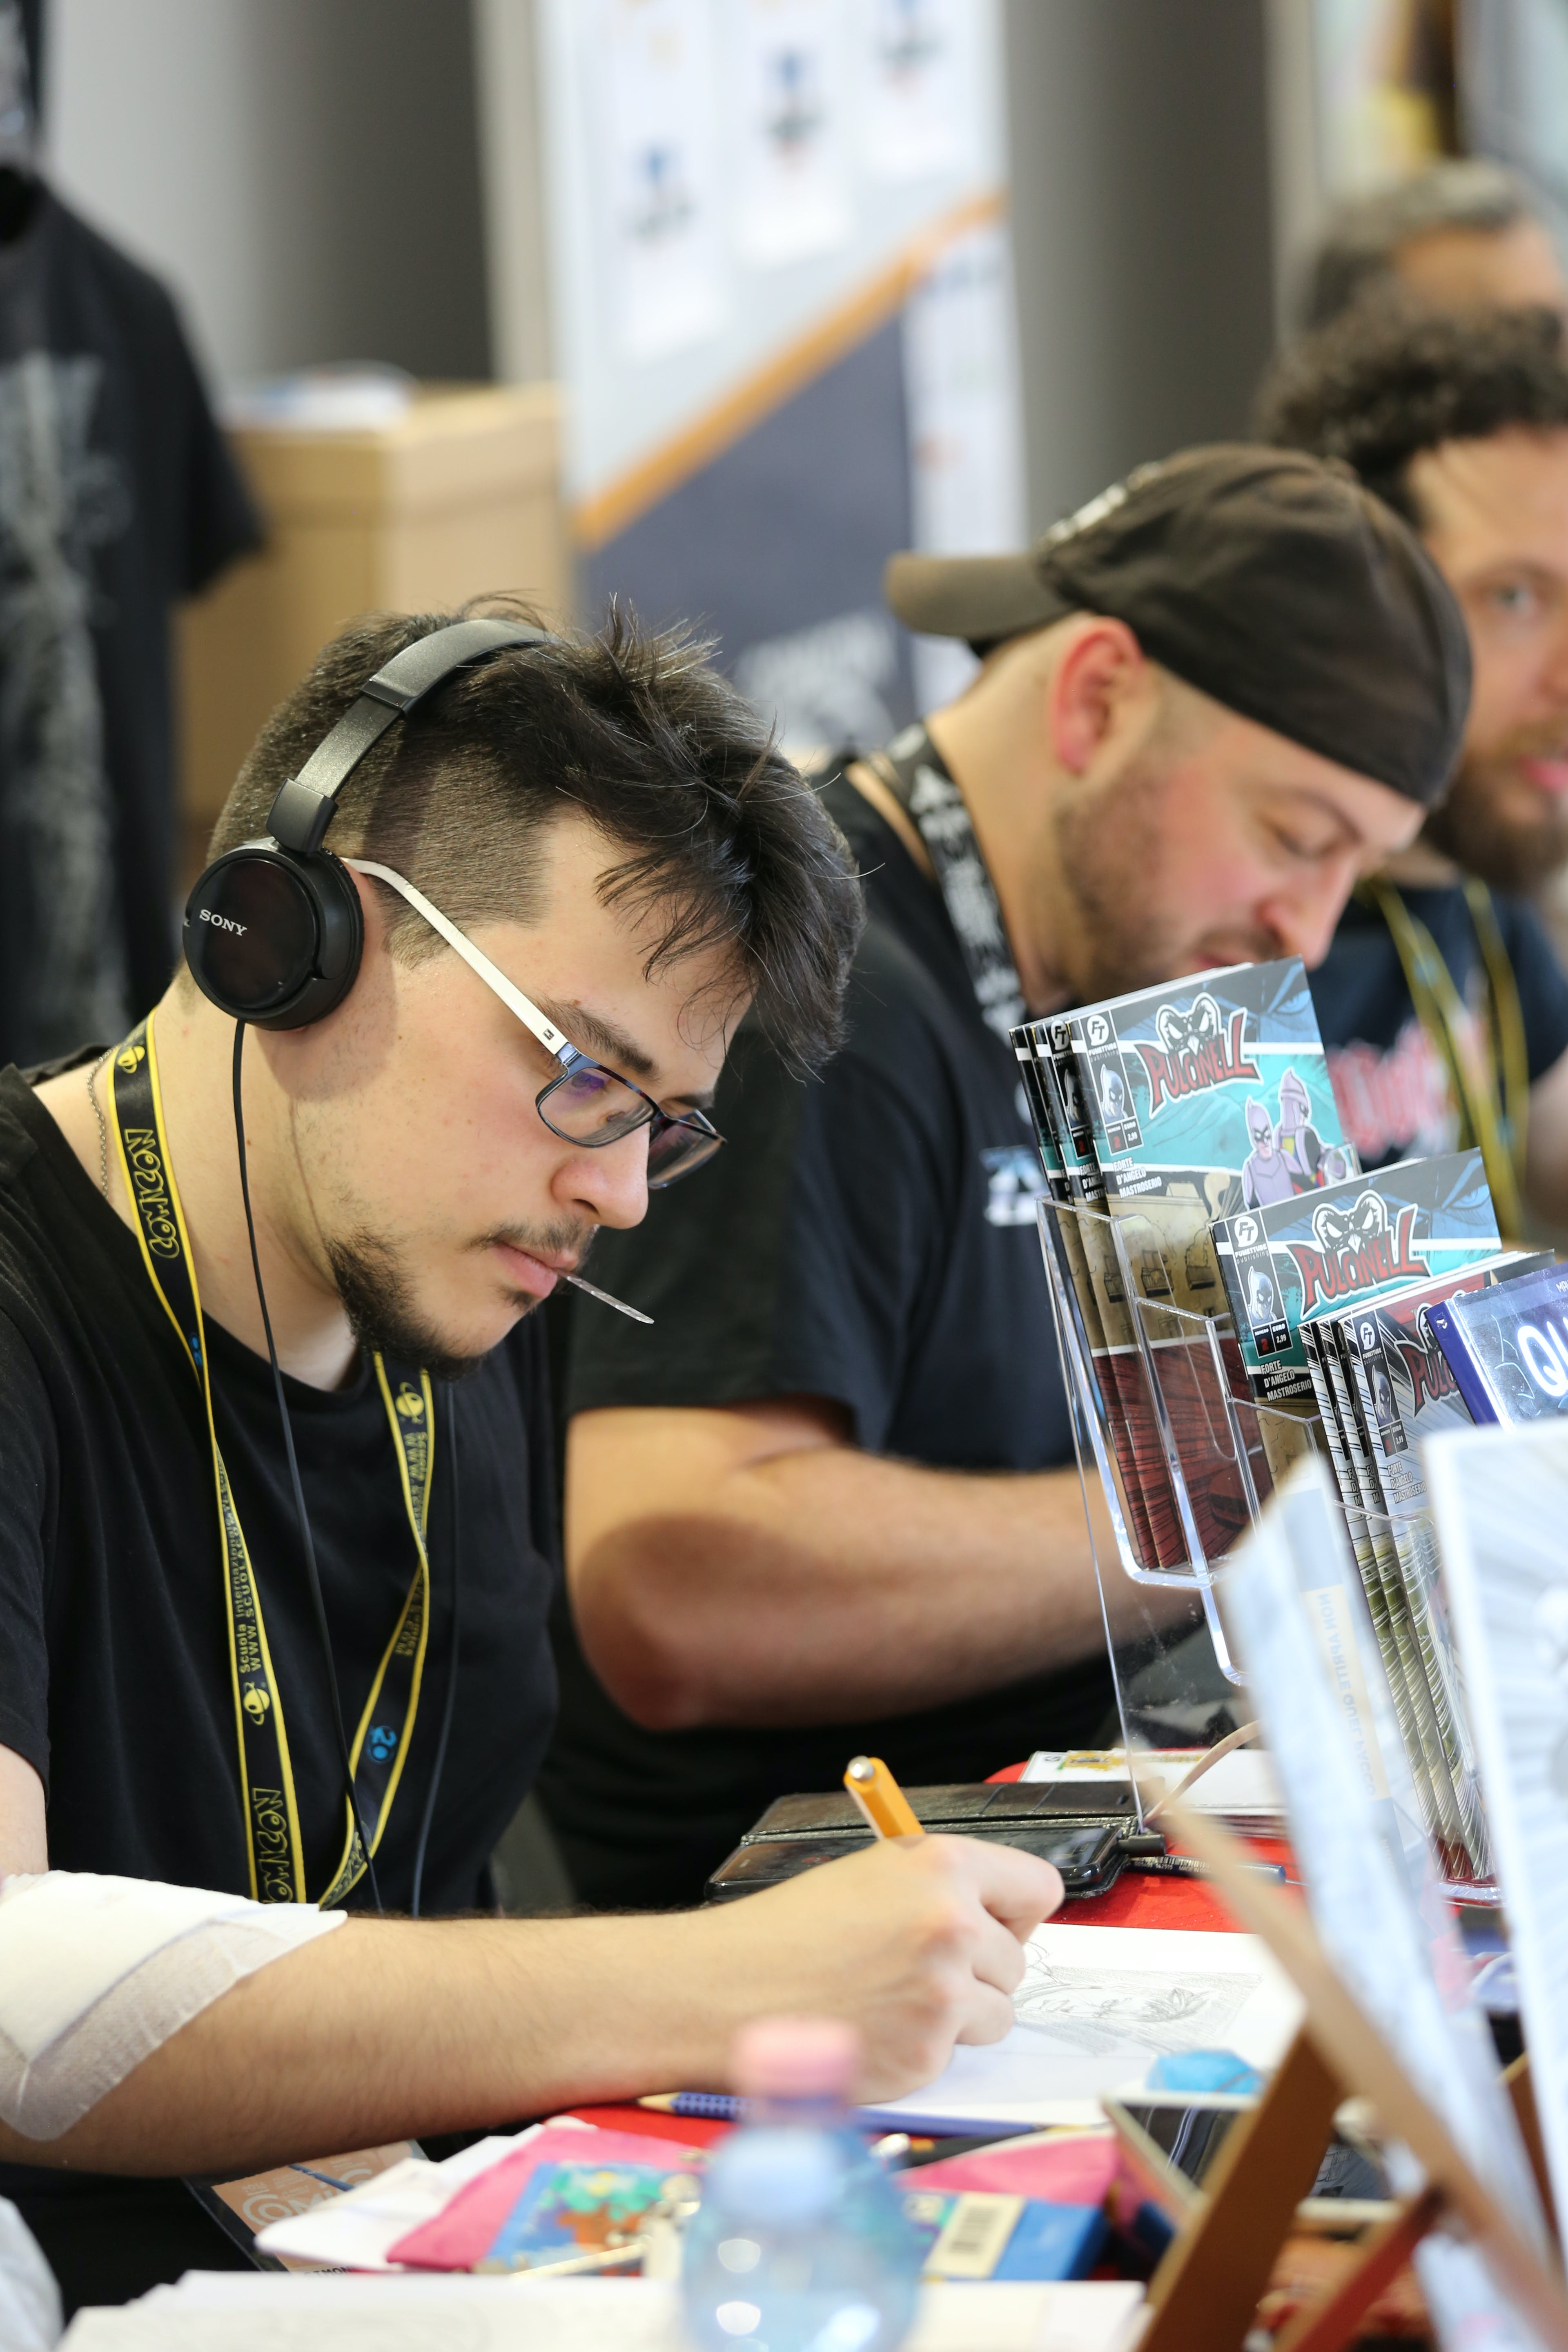 Free stock photo of at work, comicon, comics, creativity